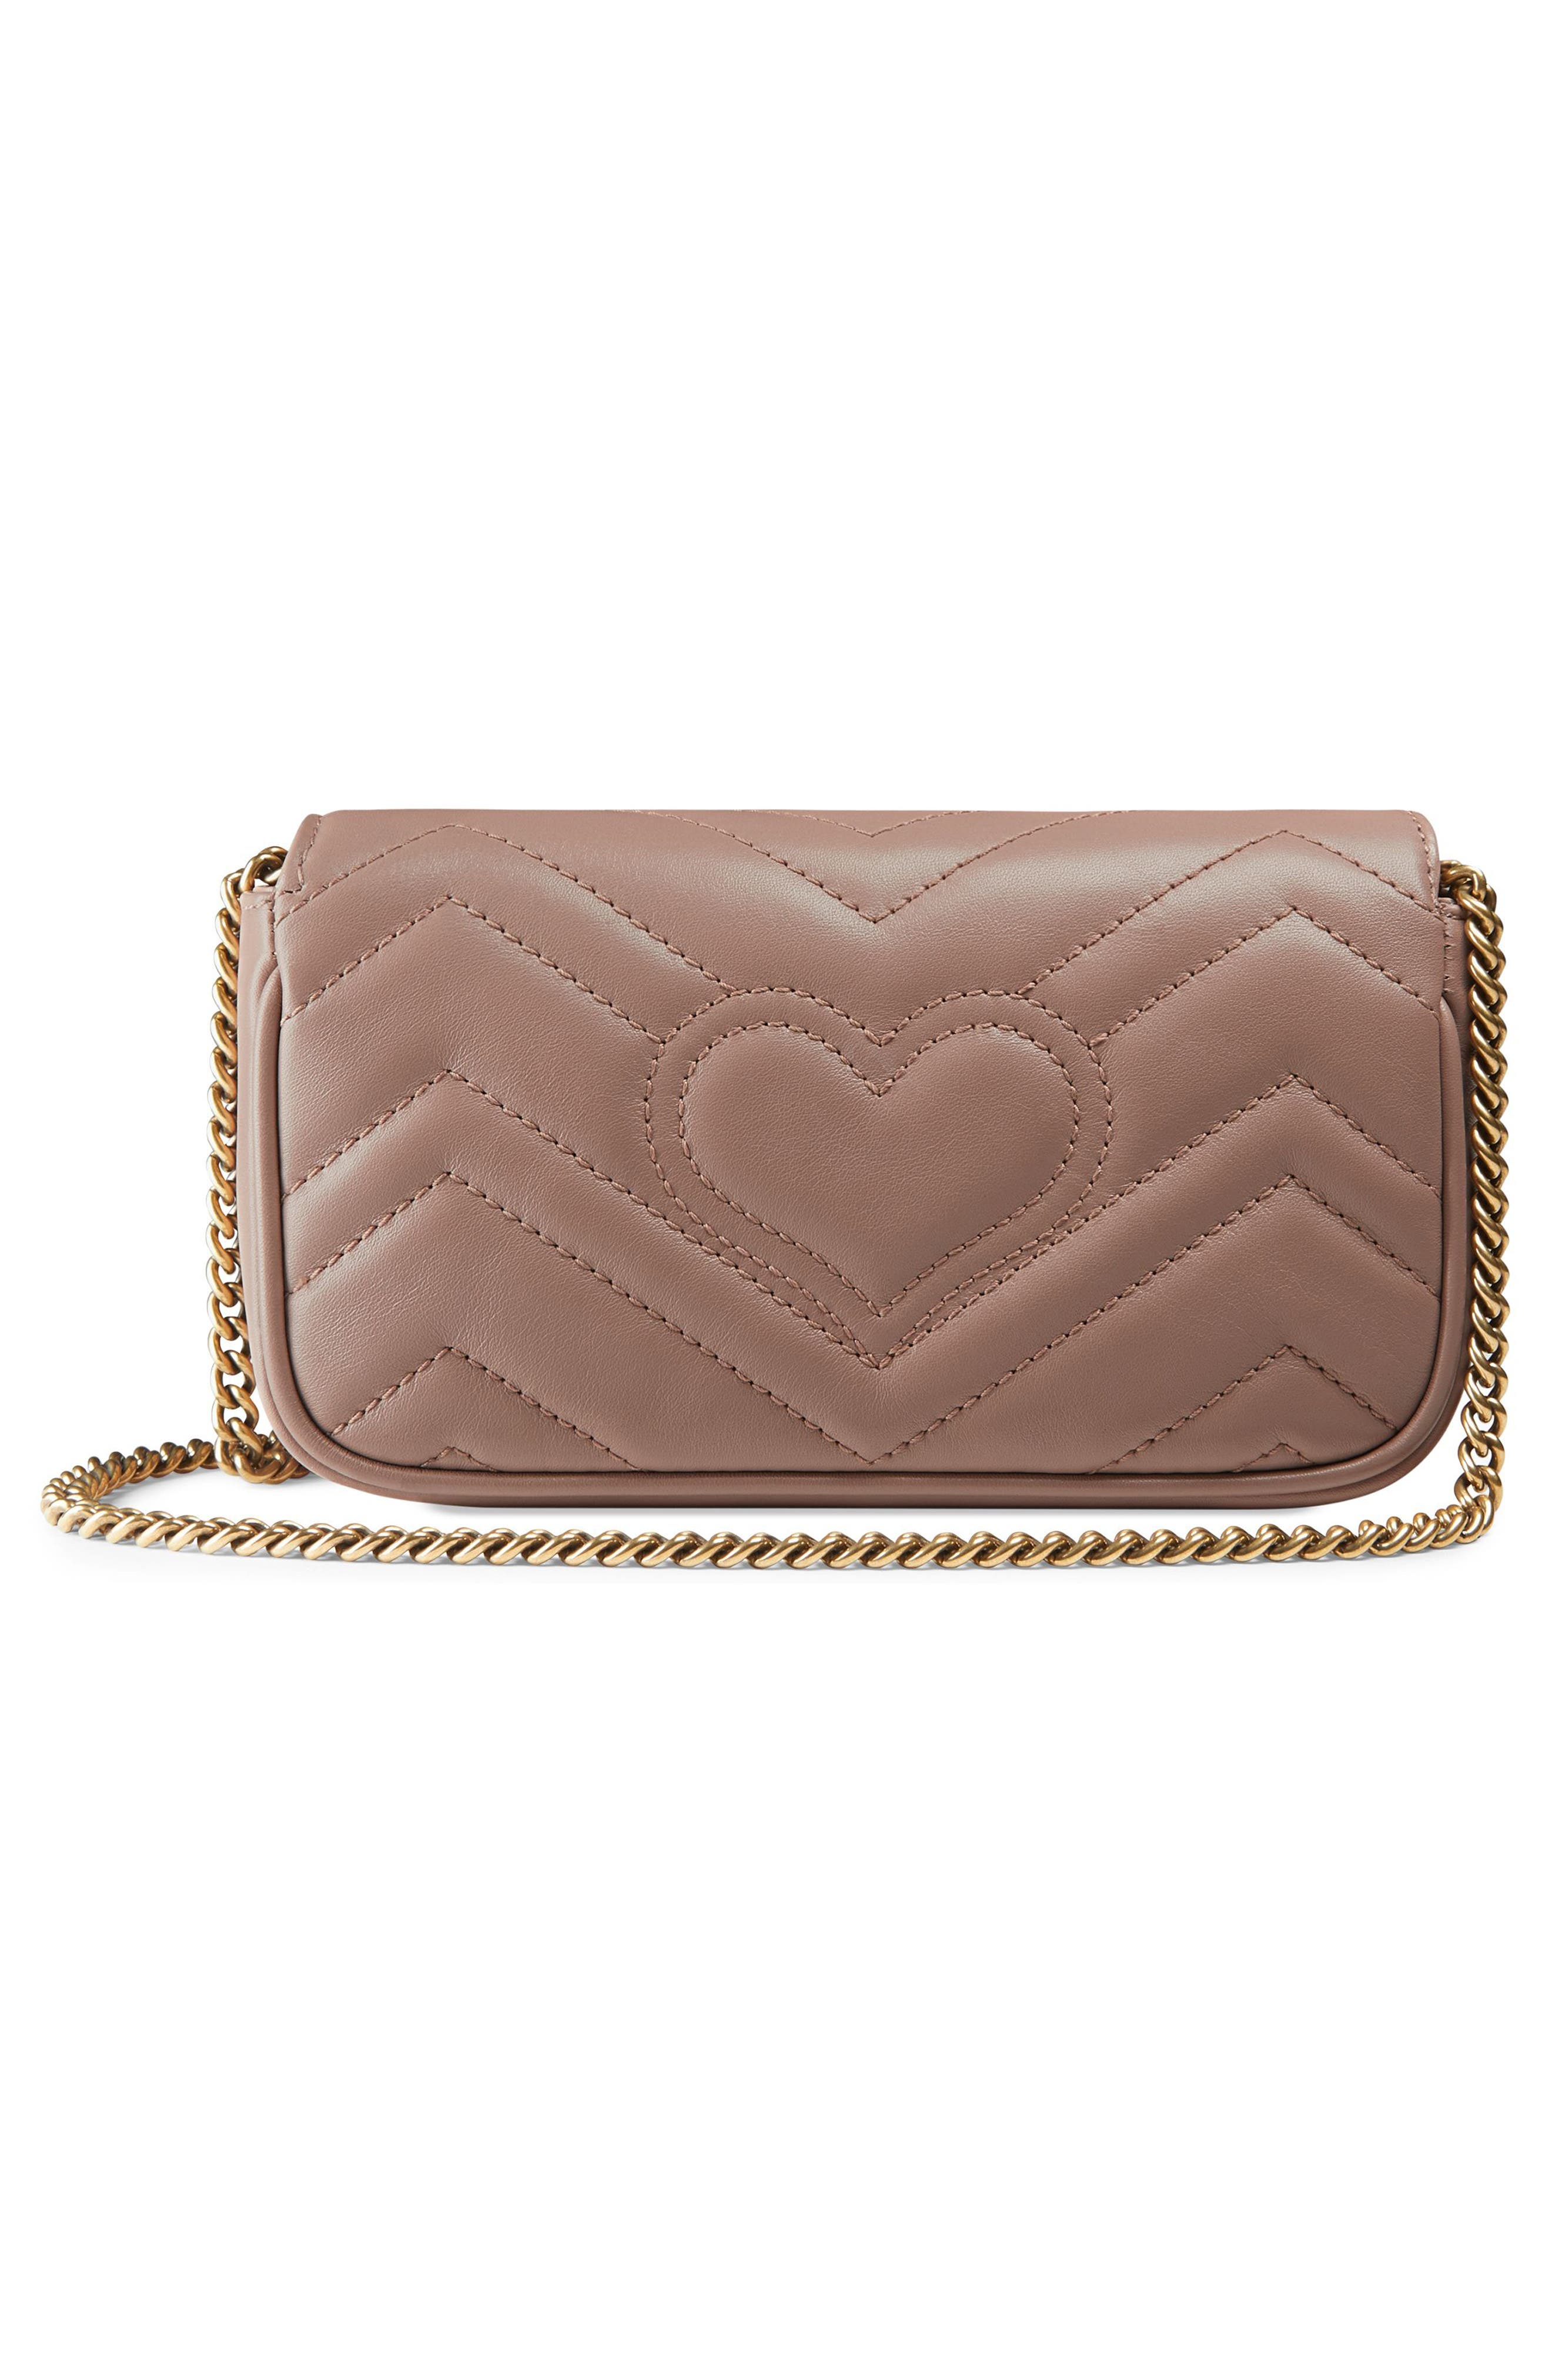 Supermini GG Marmont 2.0 Matelassé Leather Shoulder Bag,                             Alternate thumbnail 3, color,                             PORCELAIN ROSE